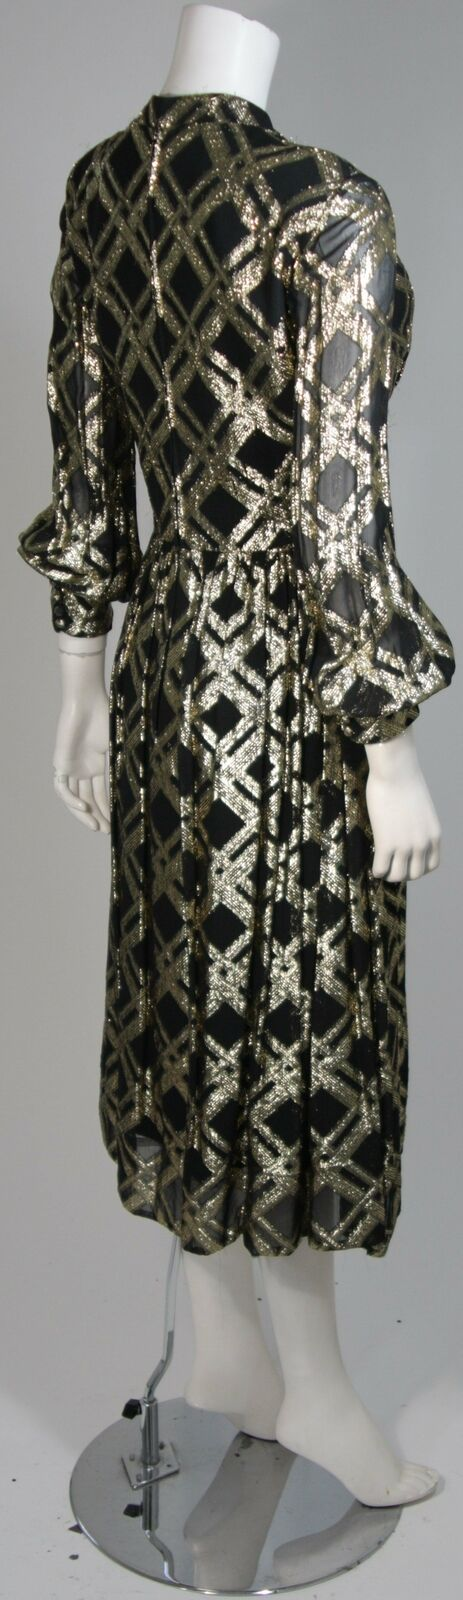 CEIL CHAPMAN Black Silk and Gold Cocktail Dress S… - image 7